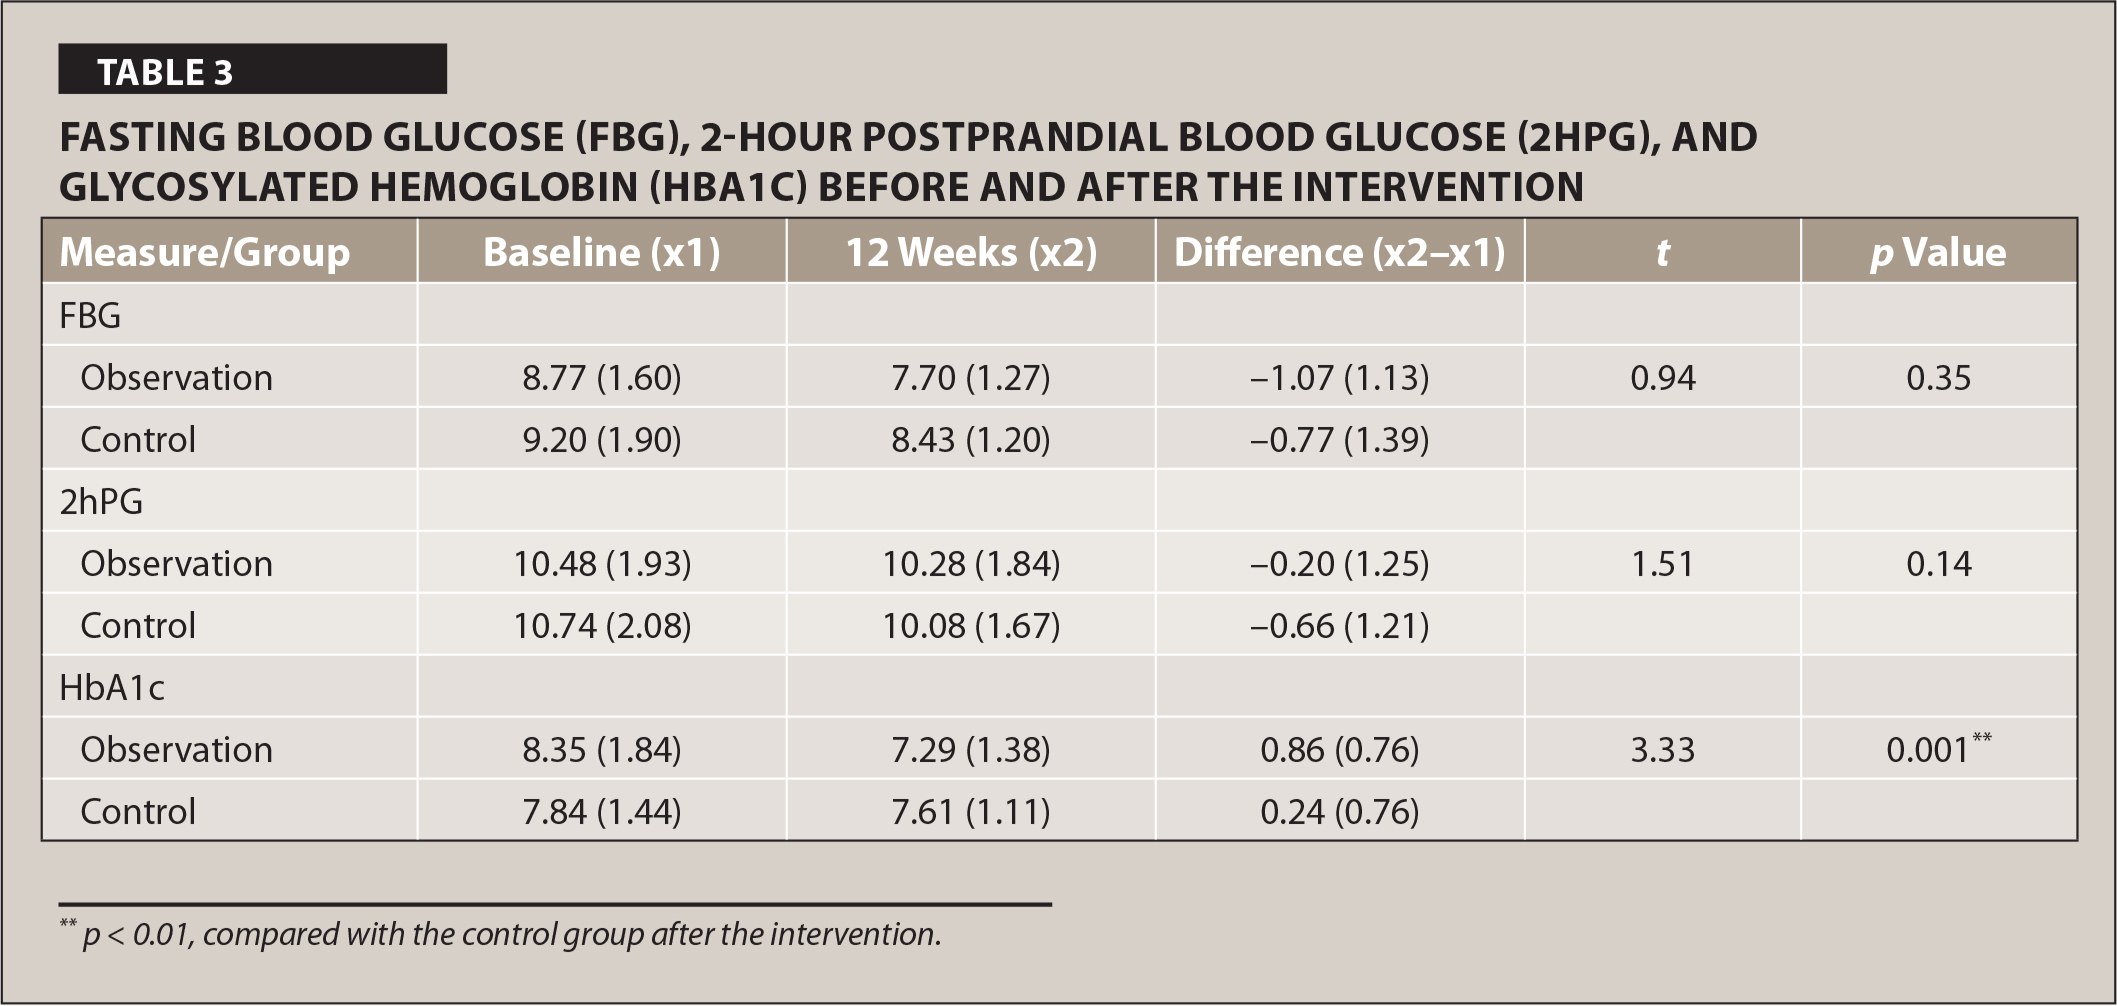 Fasting Blood Glucose (FBG), 2-Hour Postprandial Blood Glucose (2HPG), and Glycosylated Hemoglobin (HBA1C) Before and After the Intervention